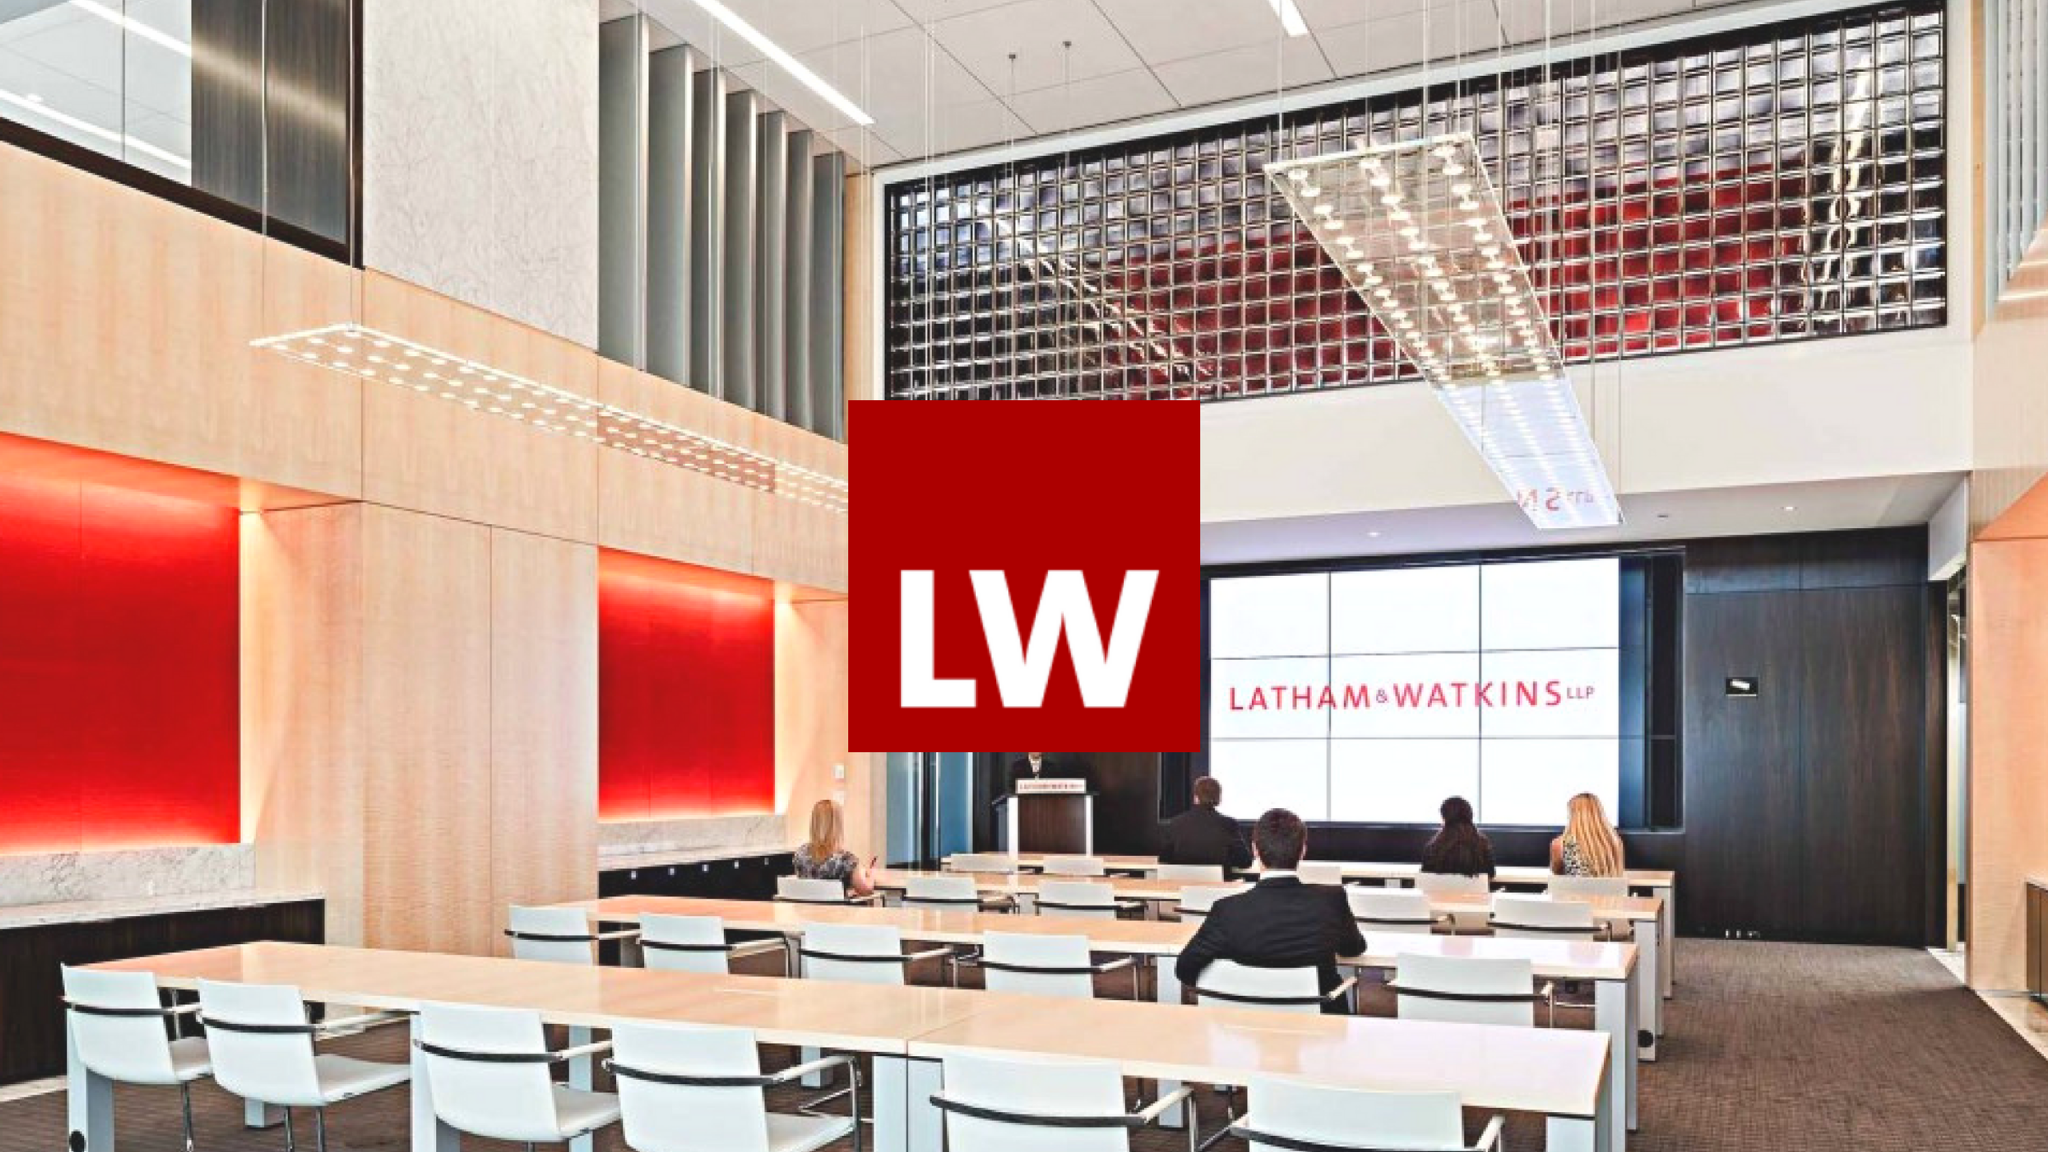 Latham & Watkins best legal law firms in the world upslide